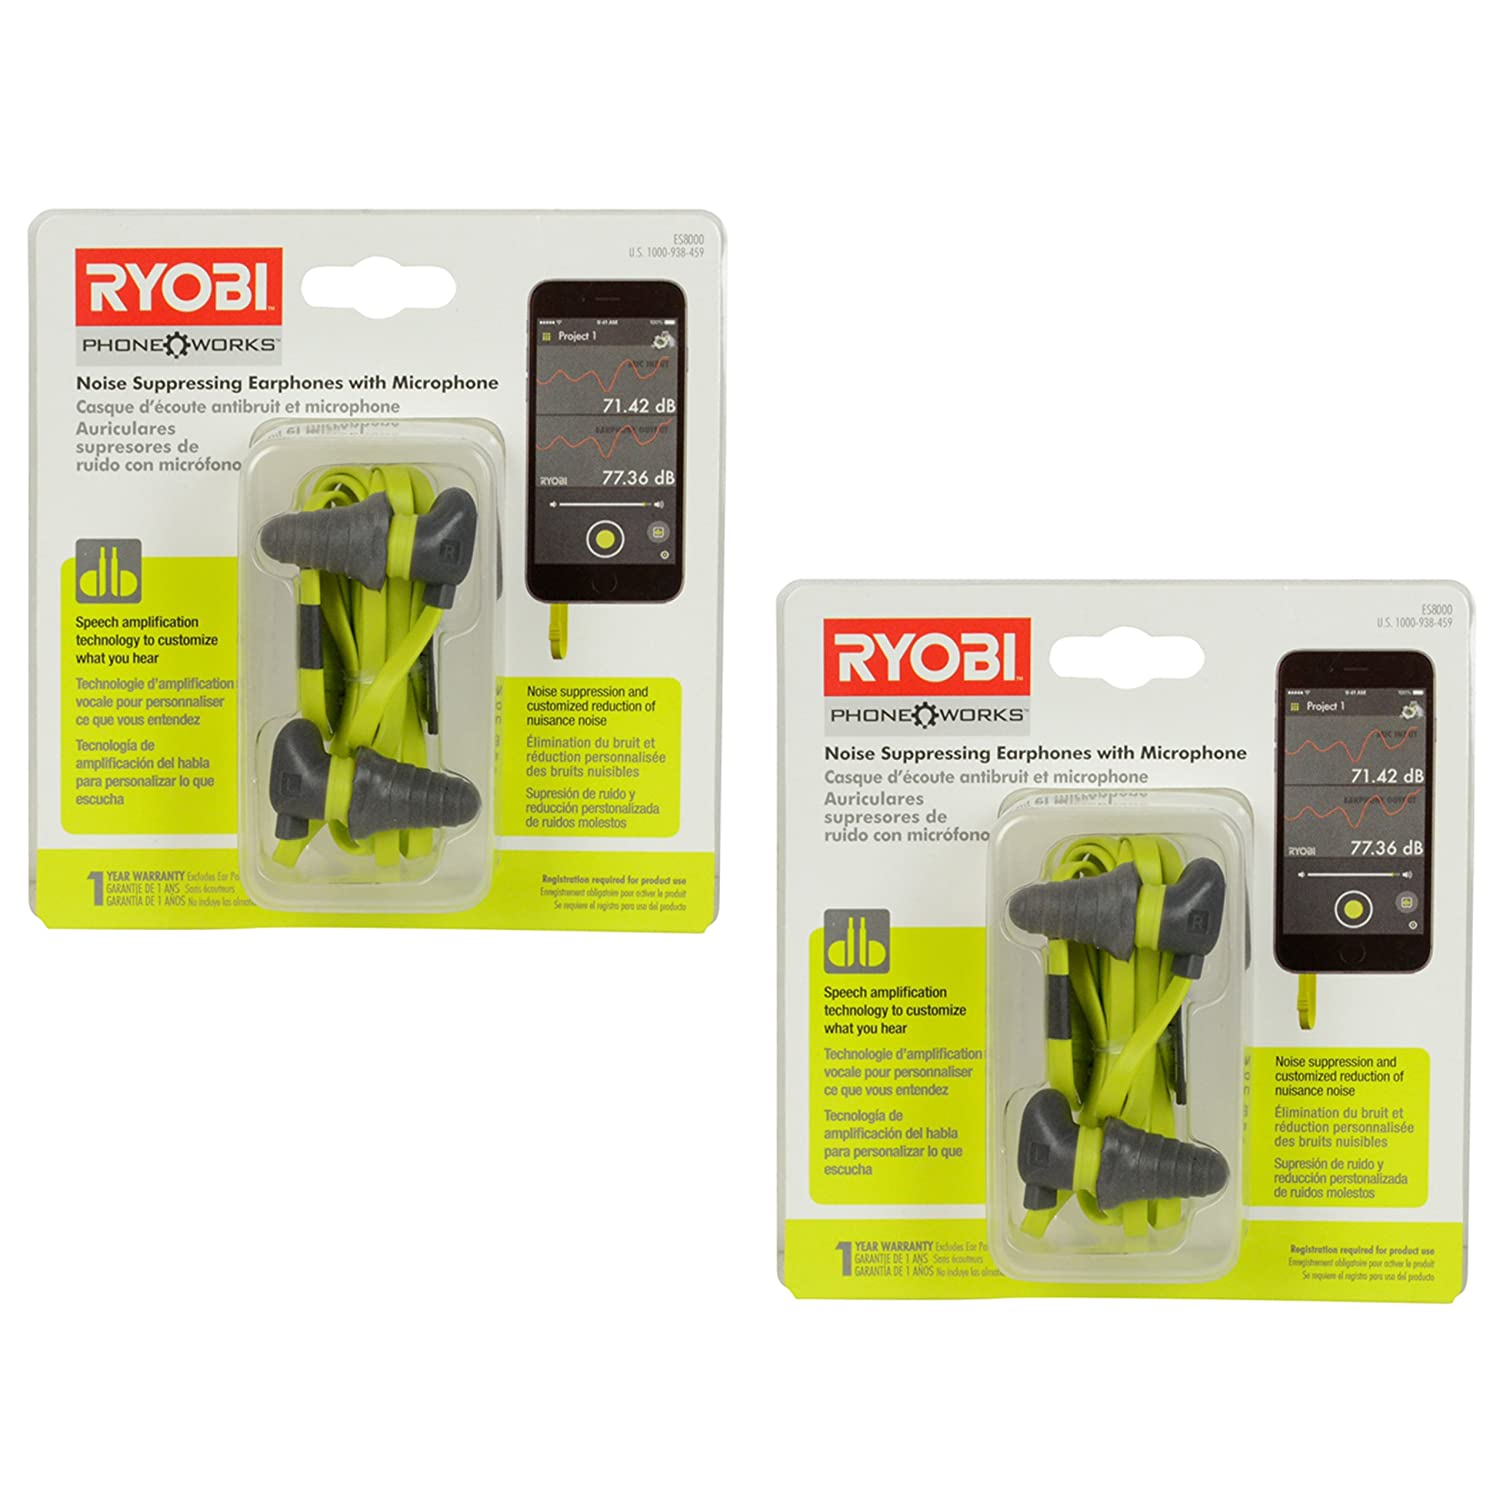 Amazon.com: Ryobi ES8000 Noise Cancelling Earphones w/Voice Amplifying Microphone - 2 Pack: Home Audio & Theater